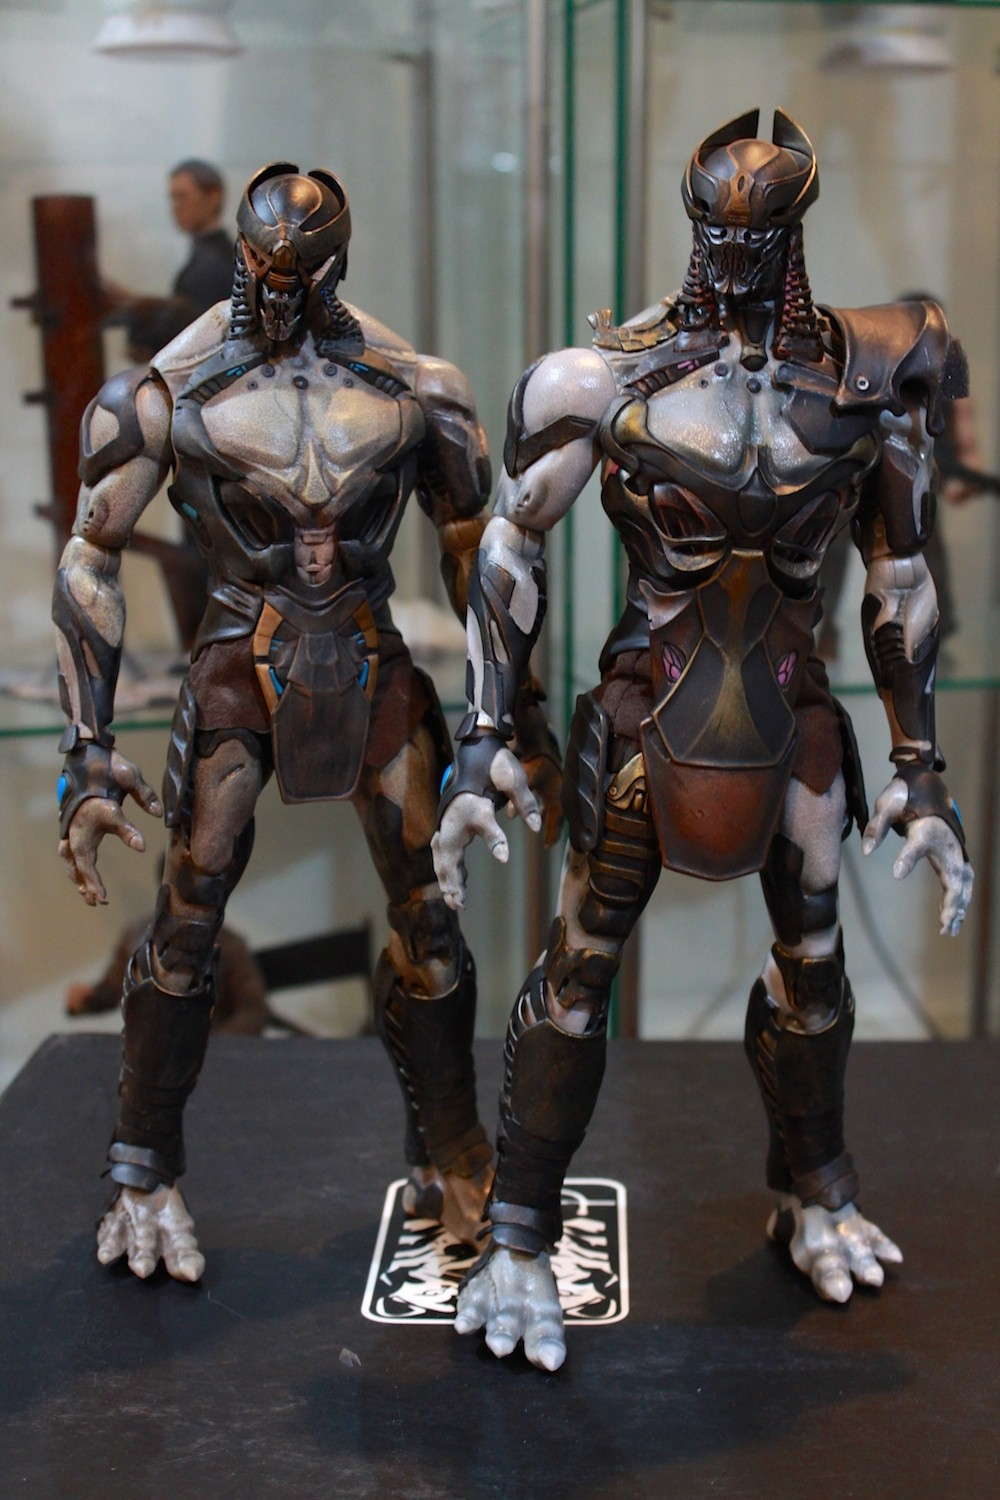 Left: Footsoldier, Right: Commander. Notice the differences: color, armor, and helmet. In terms of size they're relatively the same.